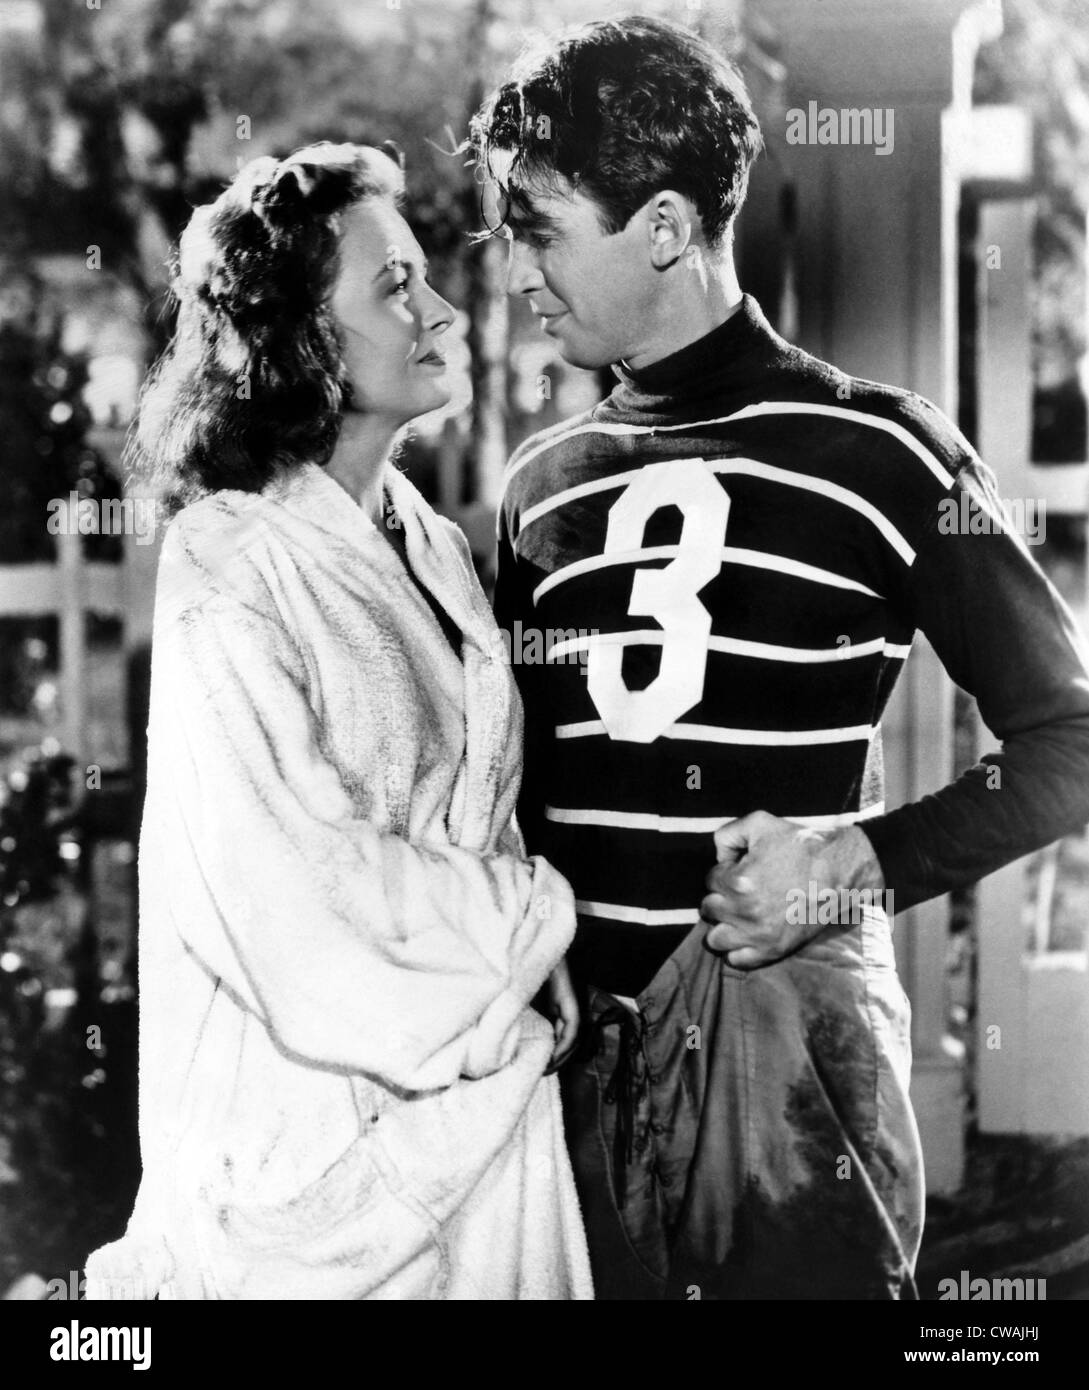 IT'S A WONDERFUL LIFE, Donna Reed, James Stewart, 1946. photo: CSU Archives / courtesy Everett Collection - Stock Image